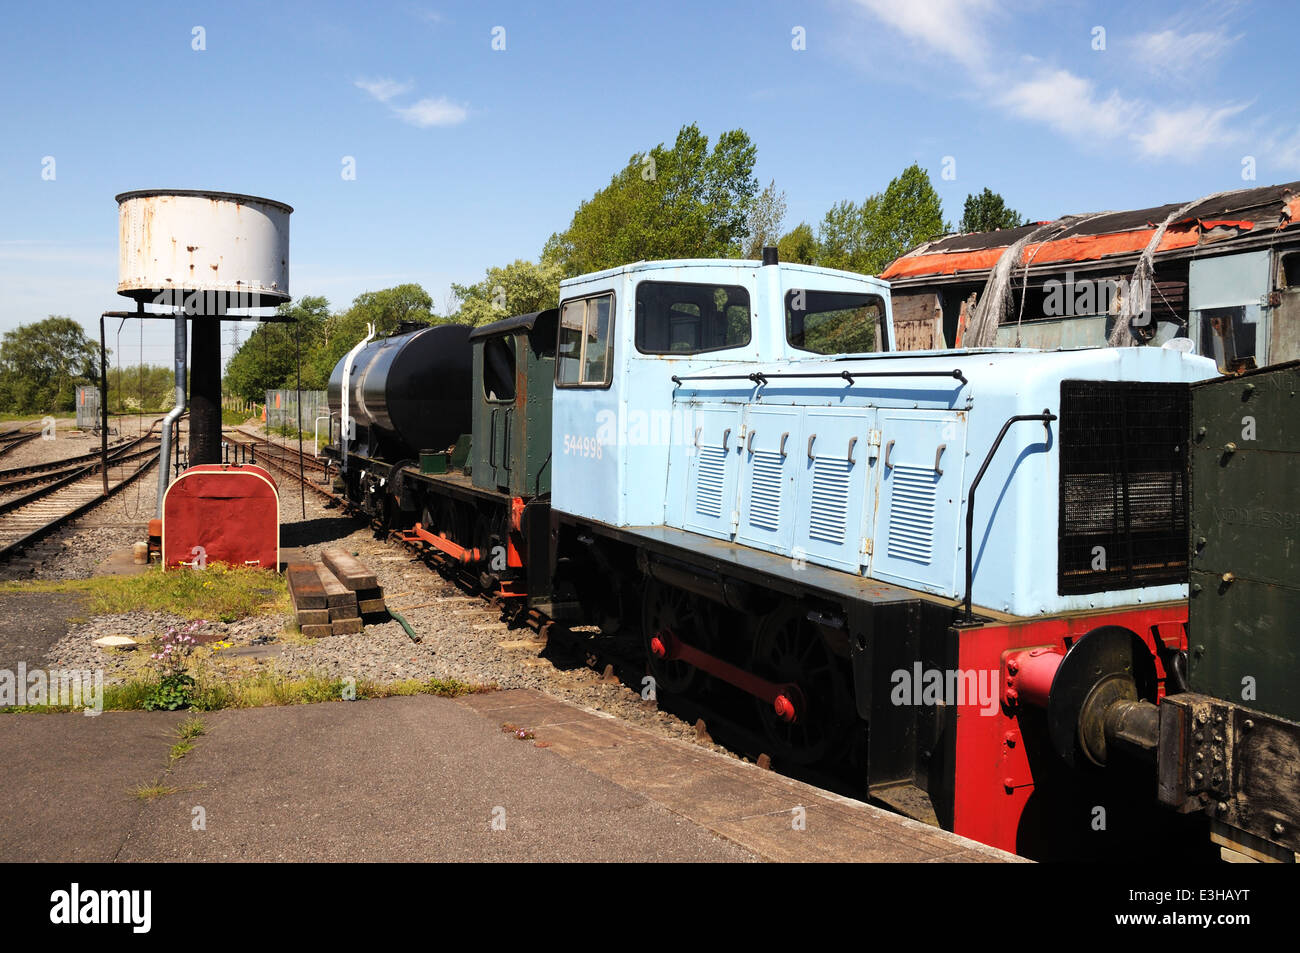 Batchelor Robinson & Co Ltd Ruston Class LPSE 0-4-0 diesel shunter number 544998, Brownhills West Railway Station. - Stock Image